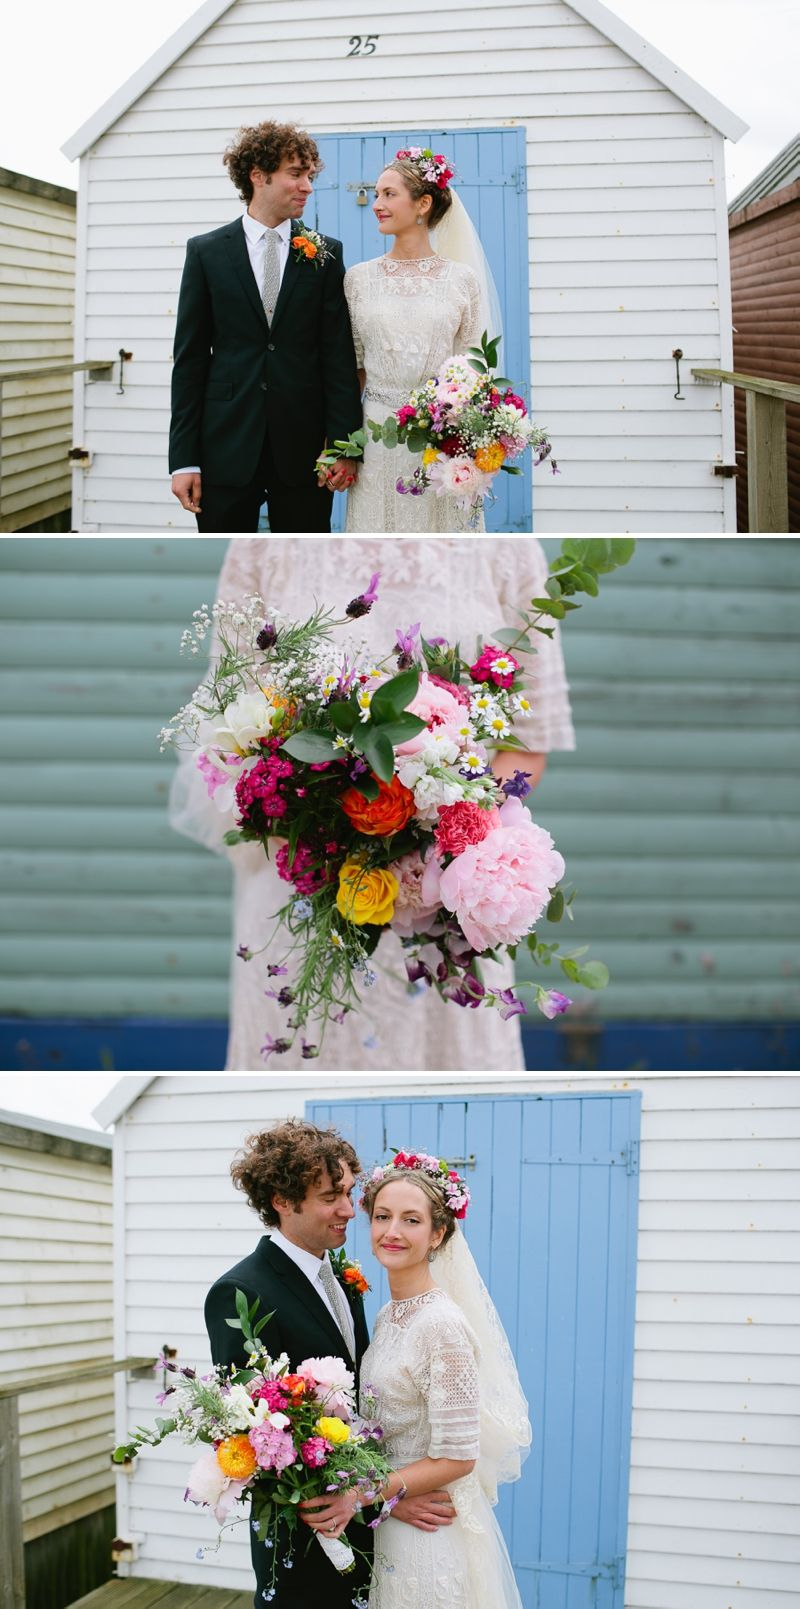 Mexican themed wedding dress  An Edwardian and Mexican inspired wedding at the Lobster Shack in